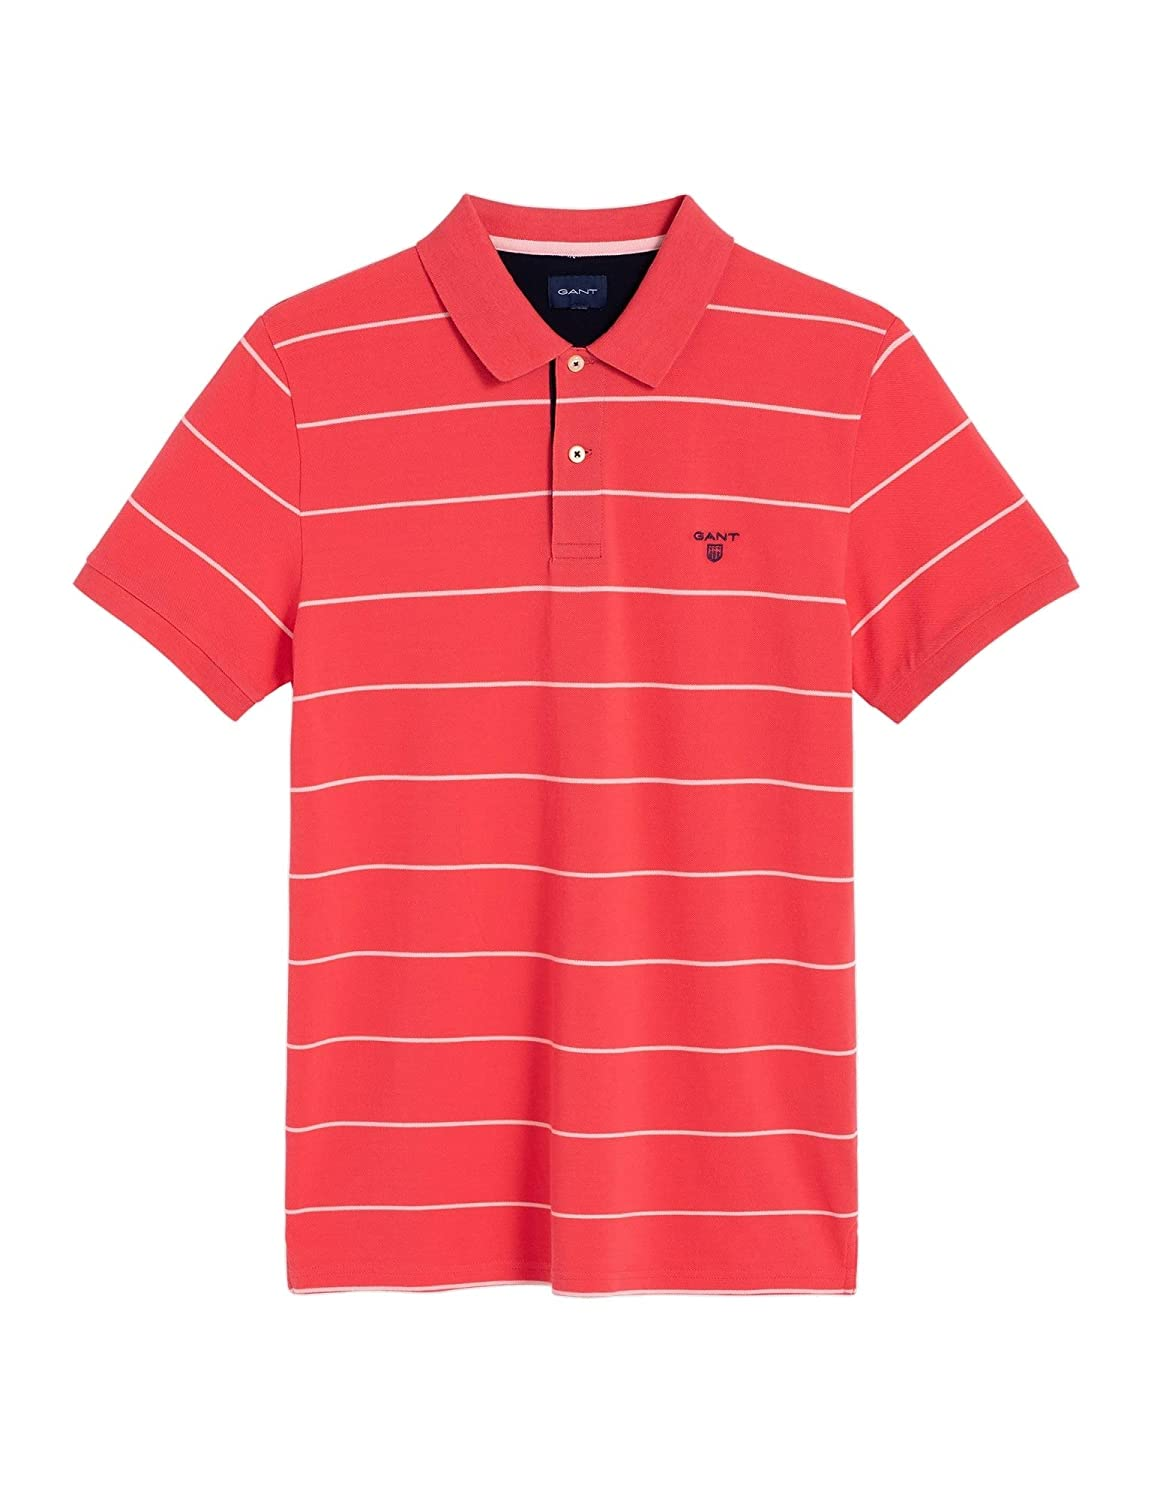 Gant Mens Striped Polo Shirt Red in Size XXX-Large: Amazon.es ...